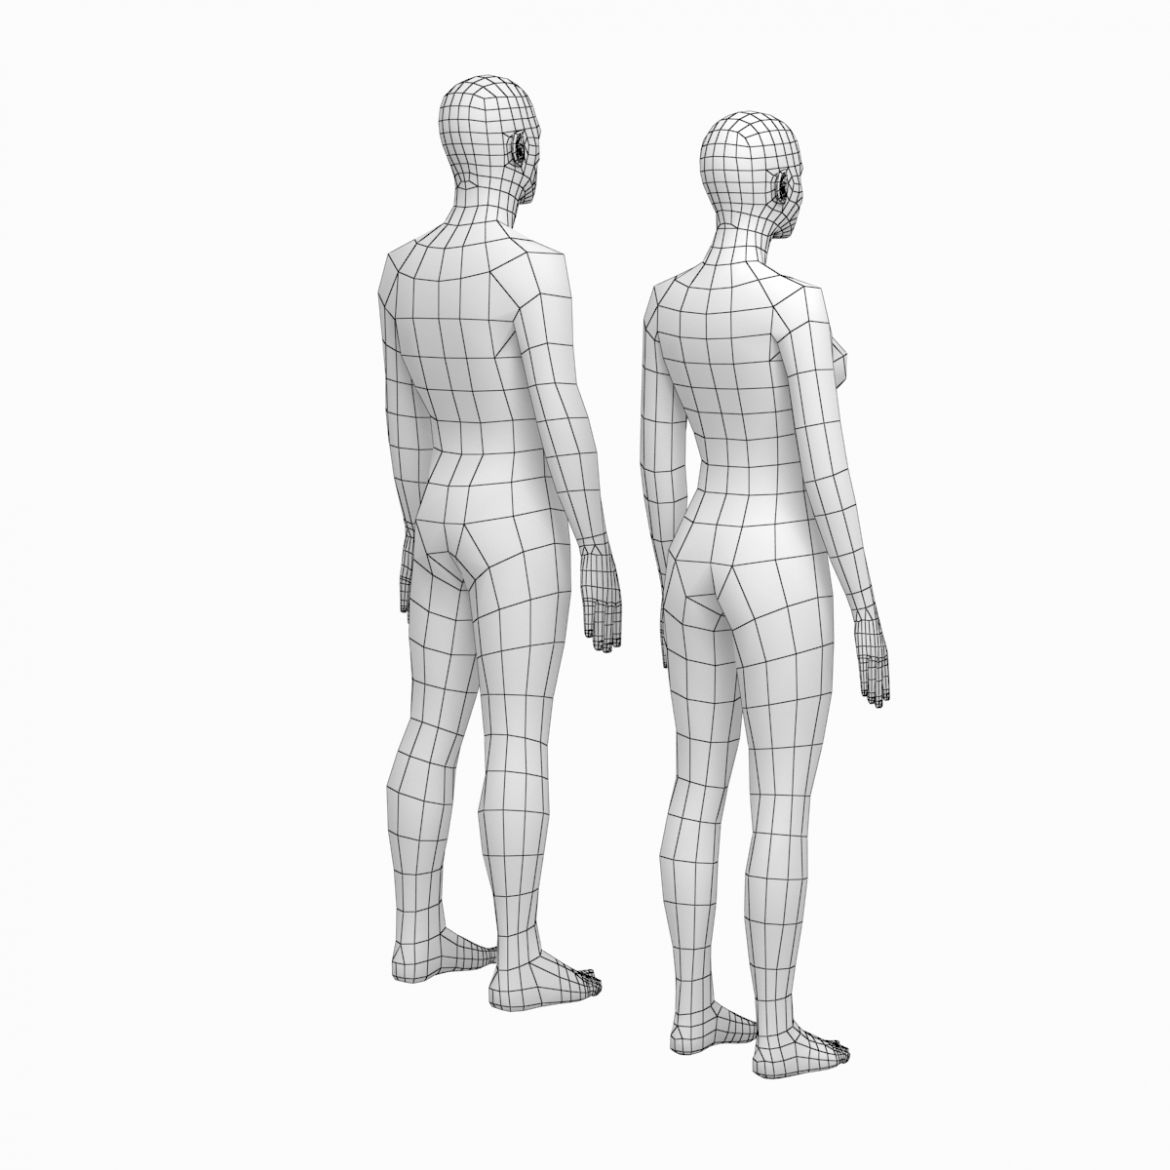 female and male deailed base mesh in rest pose 3d model 3ds max dxf dwg fbx c4d dae ma mb  obj 301292